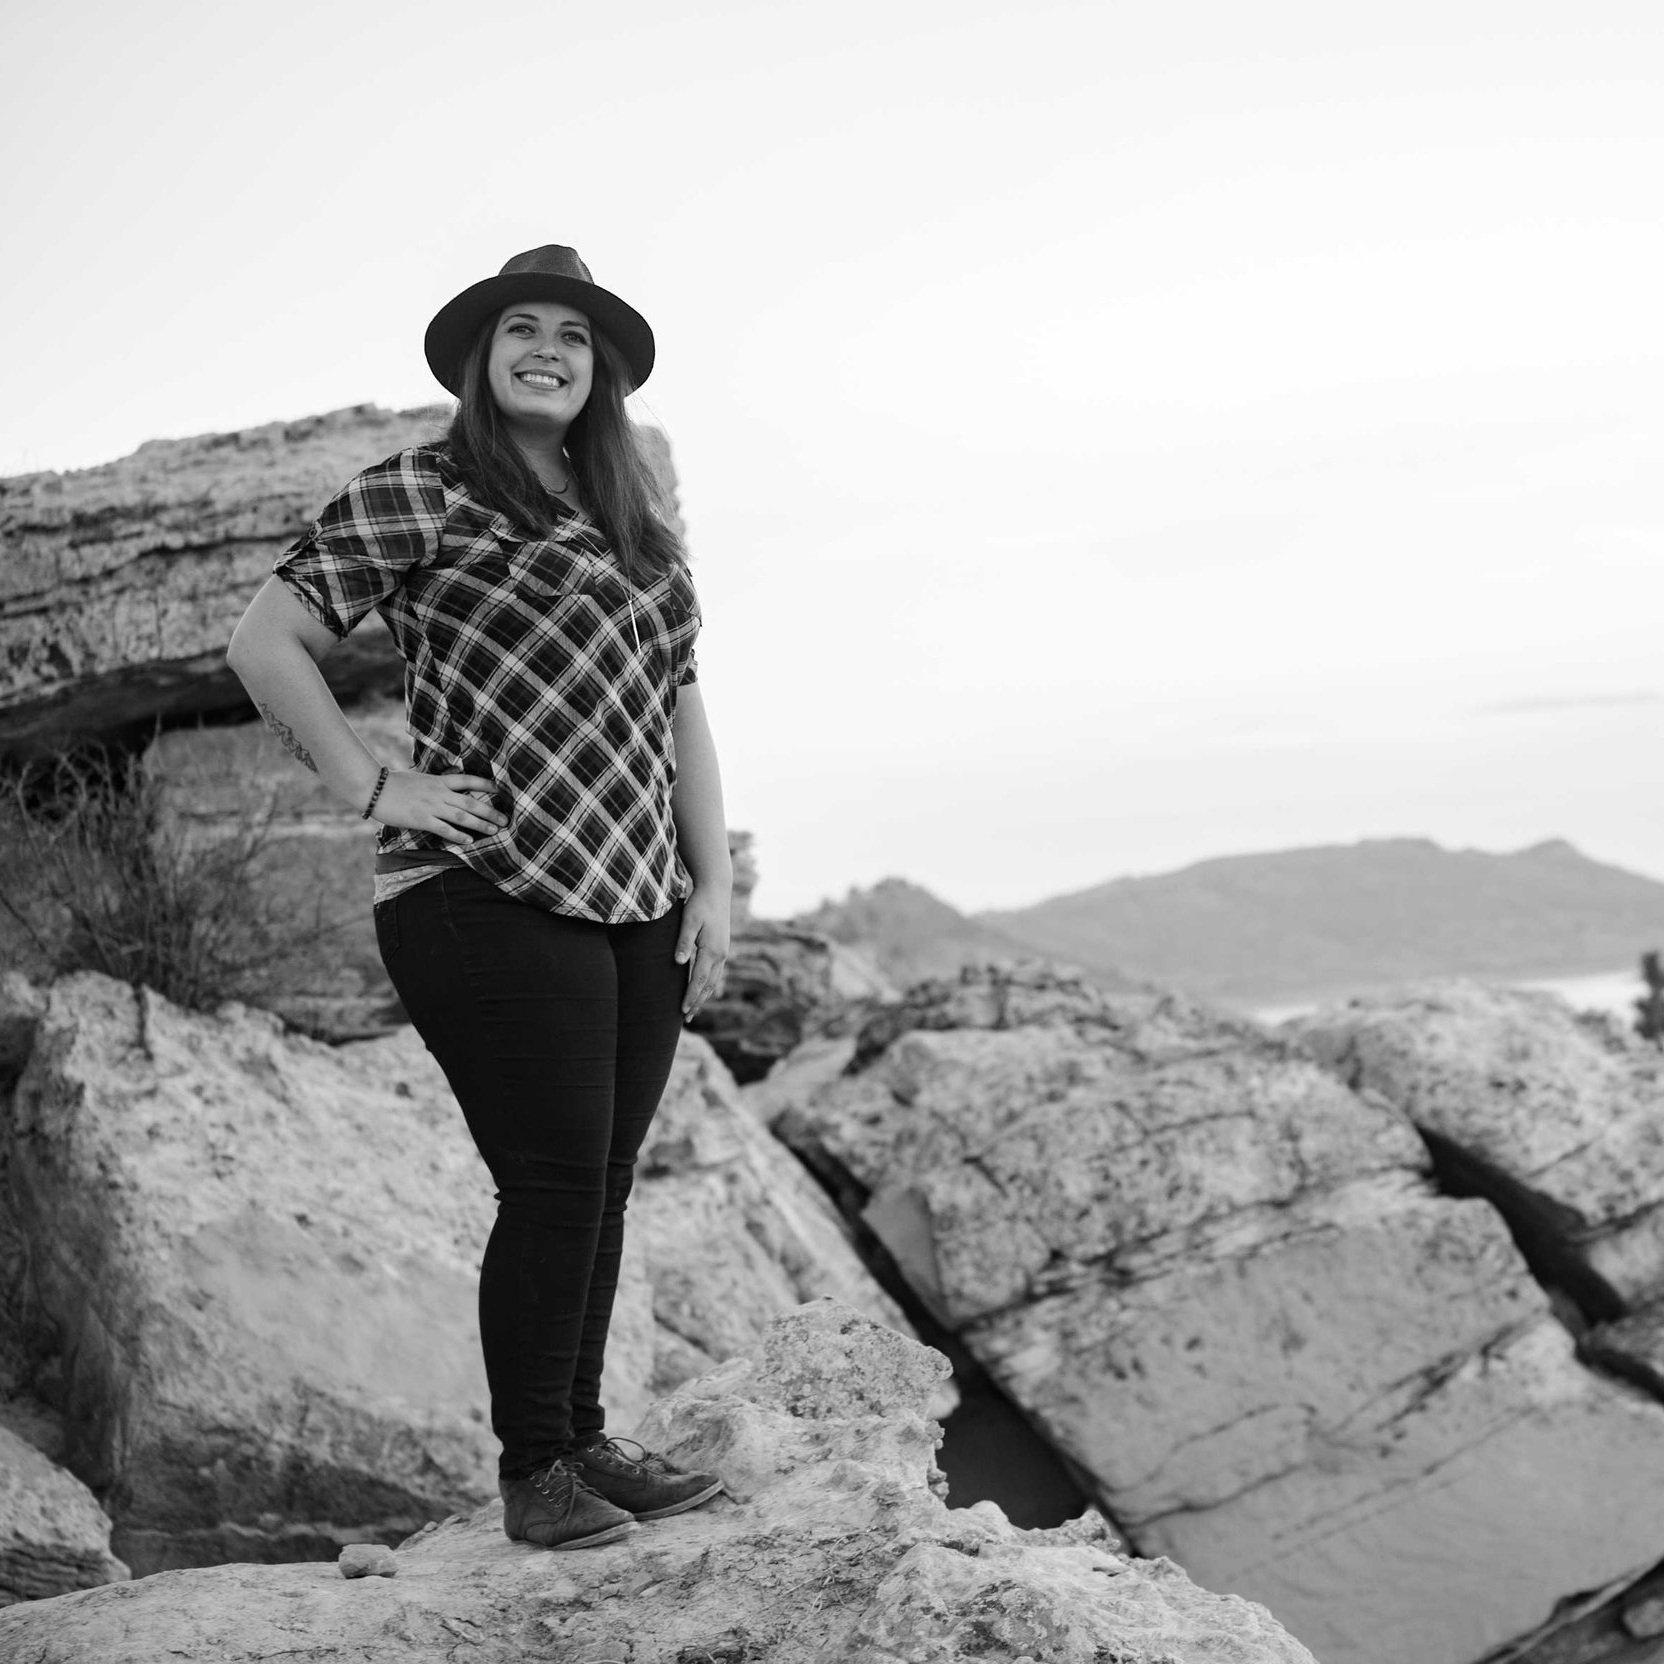 TAYLOR STROPE - Event Planner - A noco Native and Founder of Mountainside Events, she is intimately connected with the community and possesses a passion for event planning. Her positive energy is contagious and she has a knack for making memories.